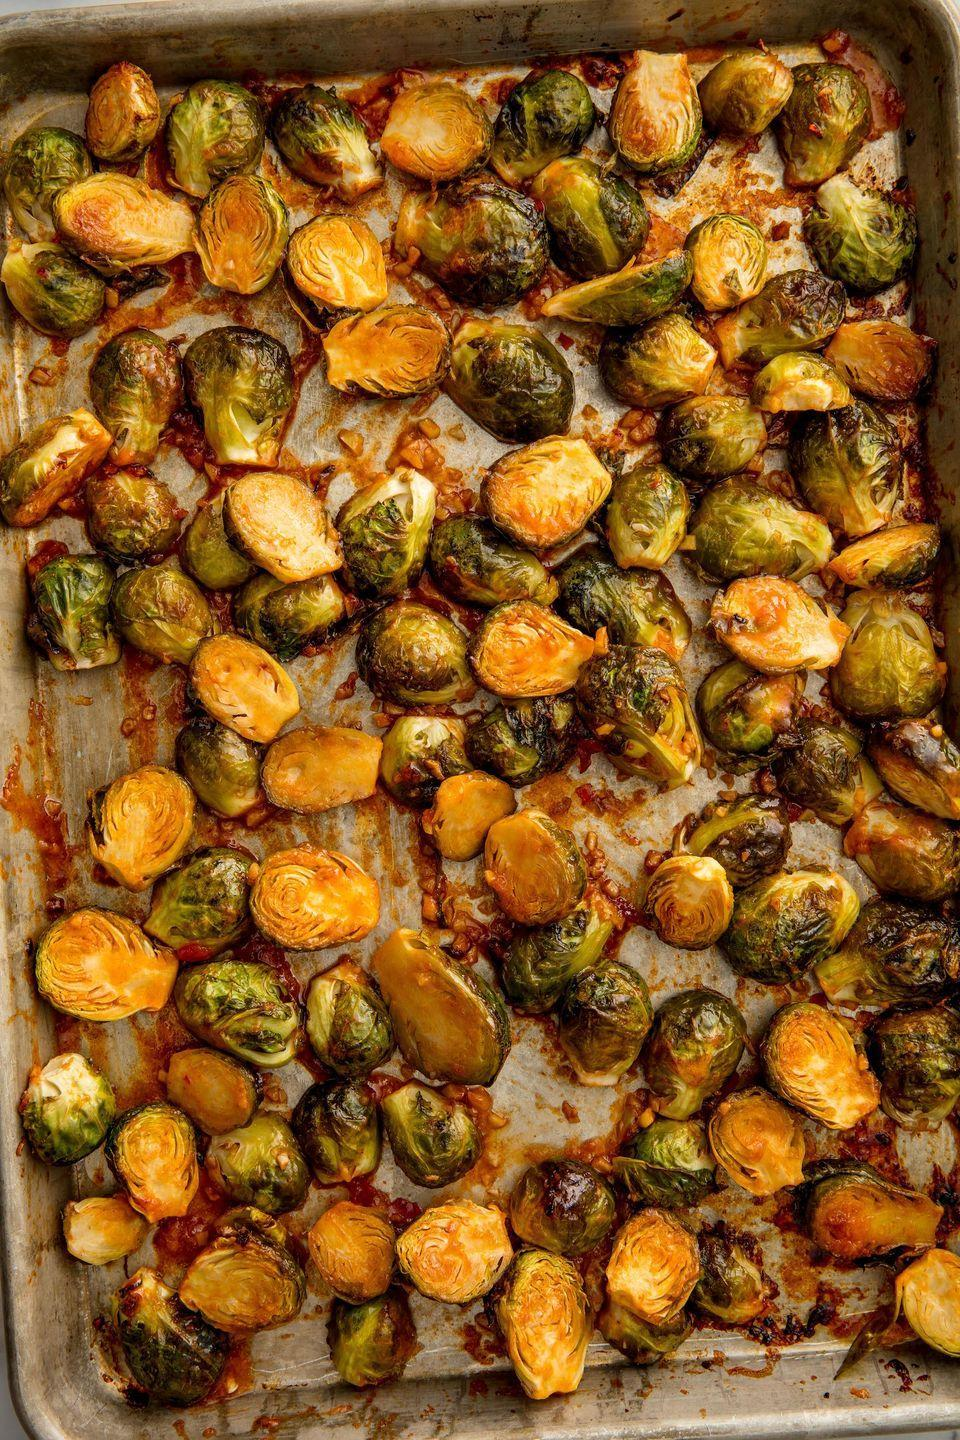 """<p>Get ready for some bangin' Brussels.</p><p>Get the recipe from <a href=""""https://www.delish.com/cooking/recipe-ideas/recipes/a51615/bang-bang-brussels-sprouts-recipe/"""" rel=""""nofollow noopener"""" target=""""_blank"""" data-ylk=""""slk:Delish"""" class=""""link rapid-noclick-resp"""">Delish</a>.</p>"""